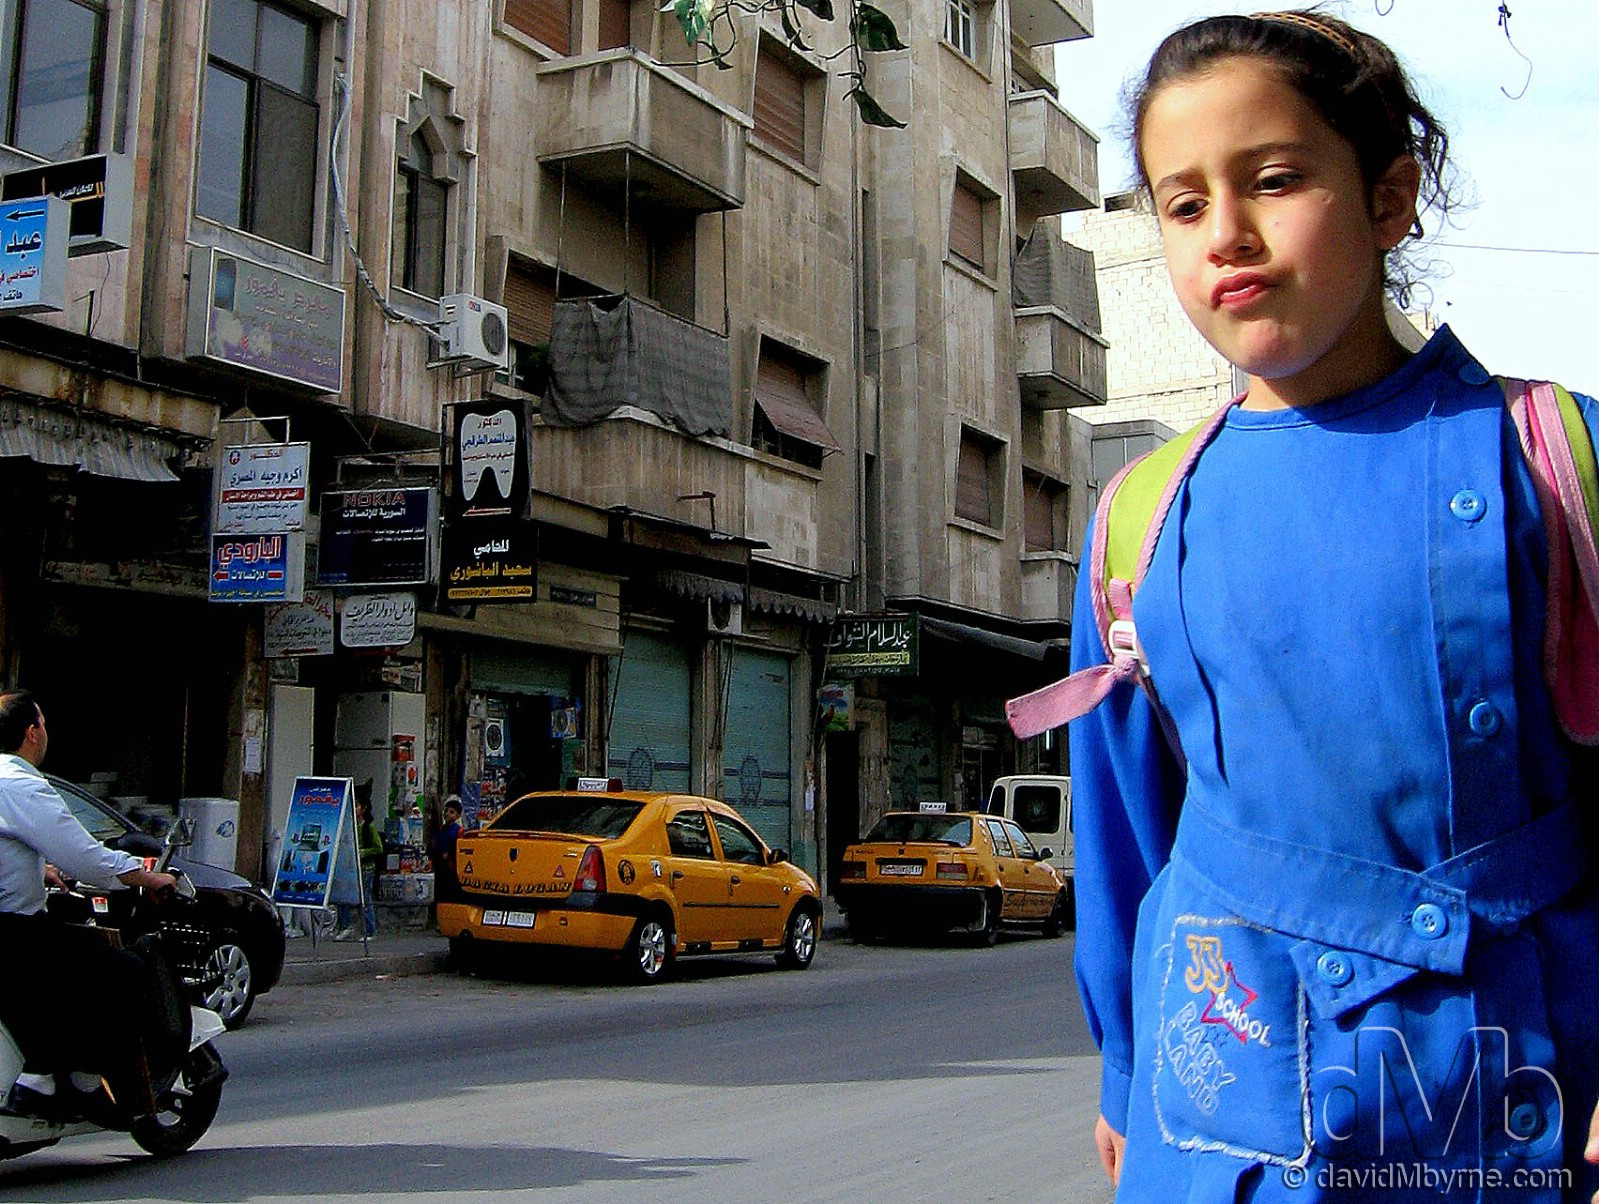 On the streets of Hama, Syria. May 7th, 2008.